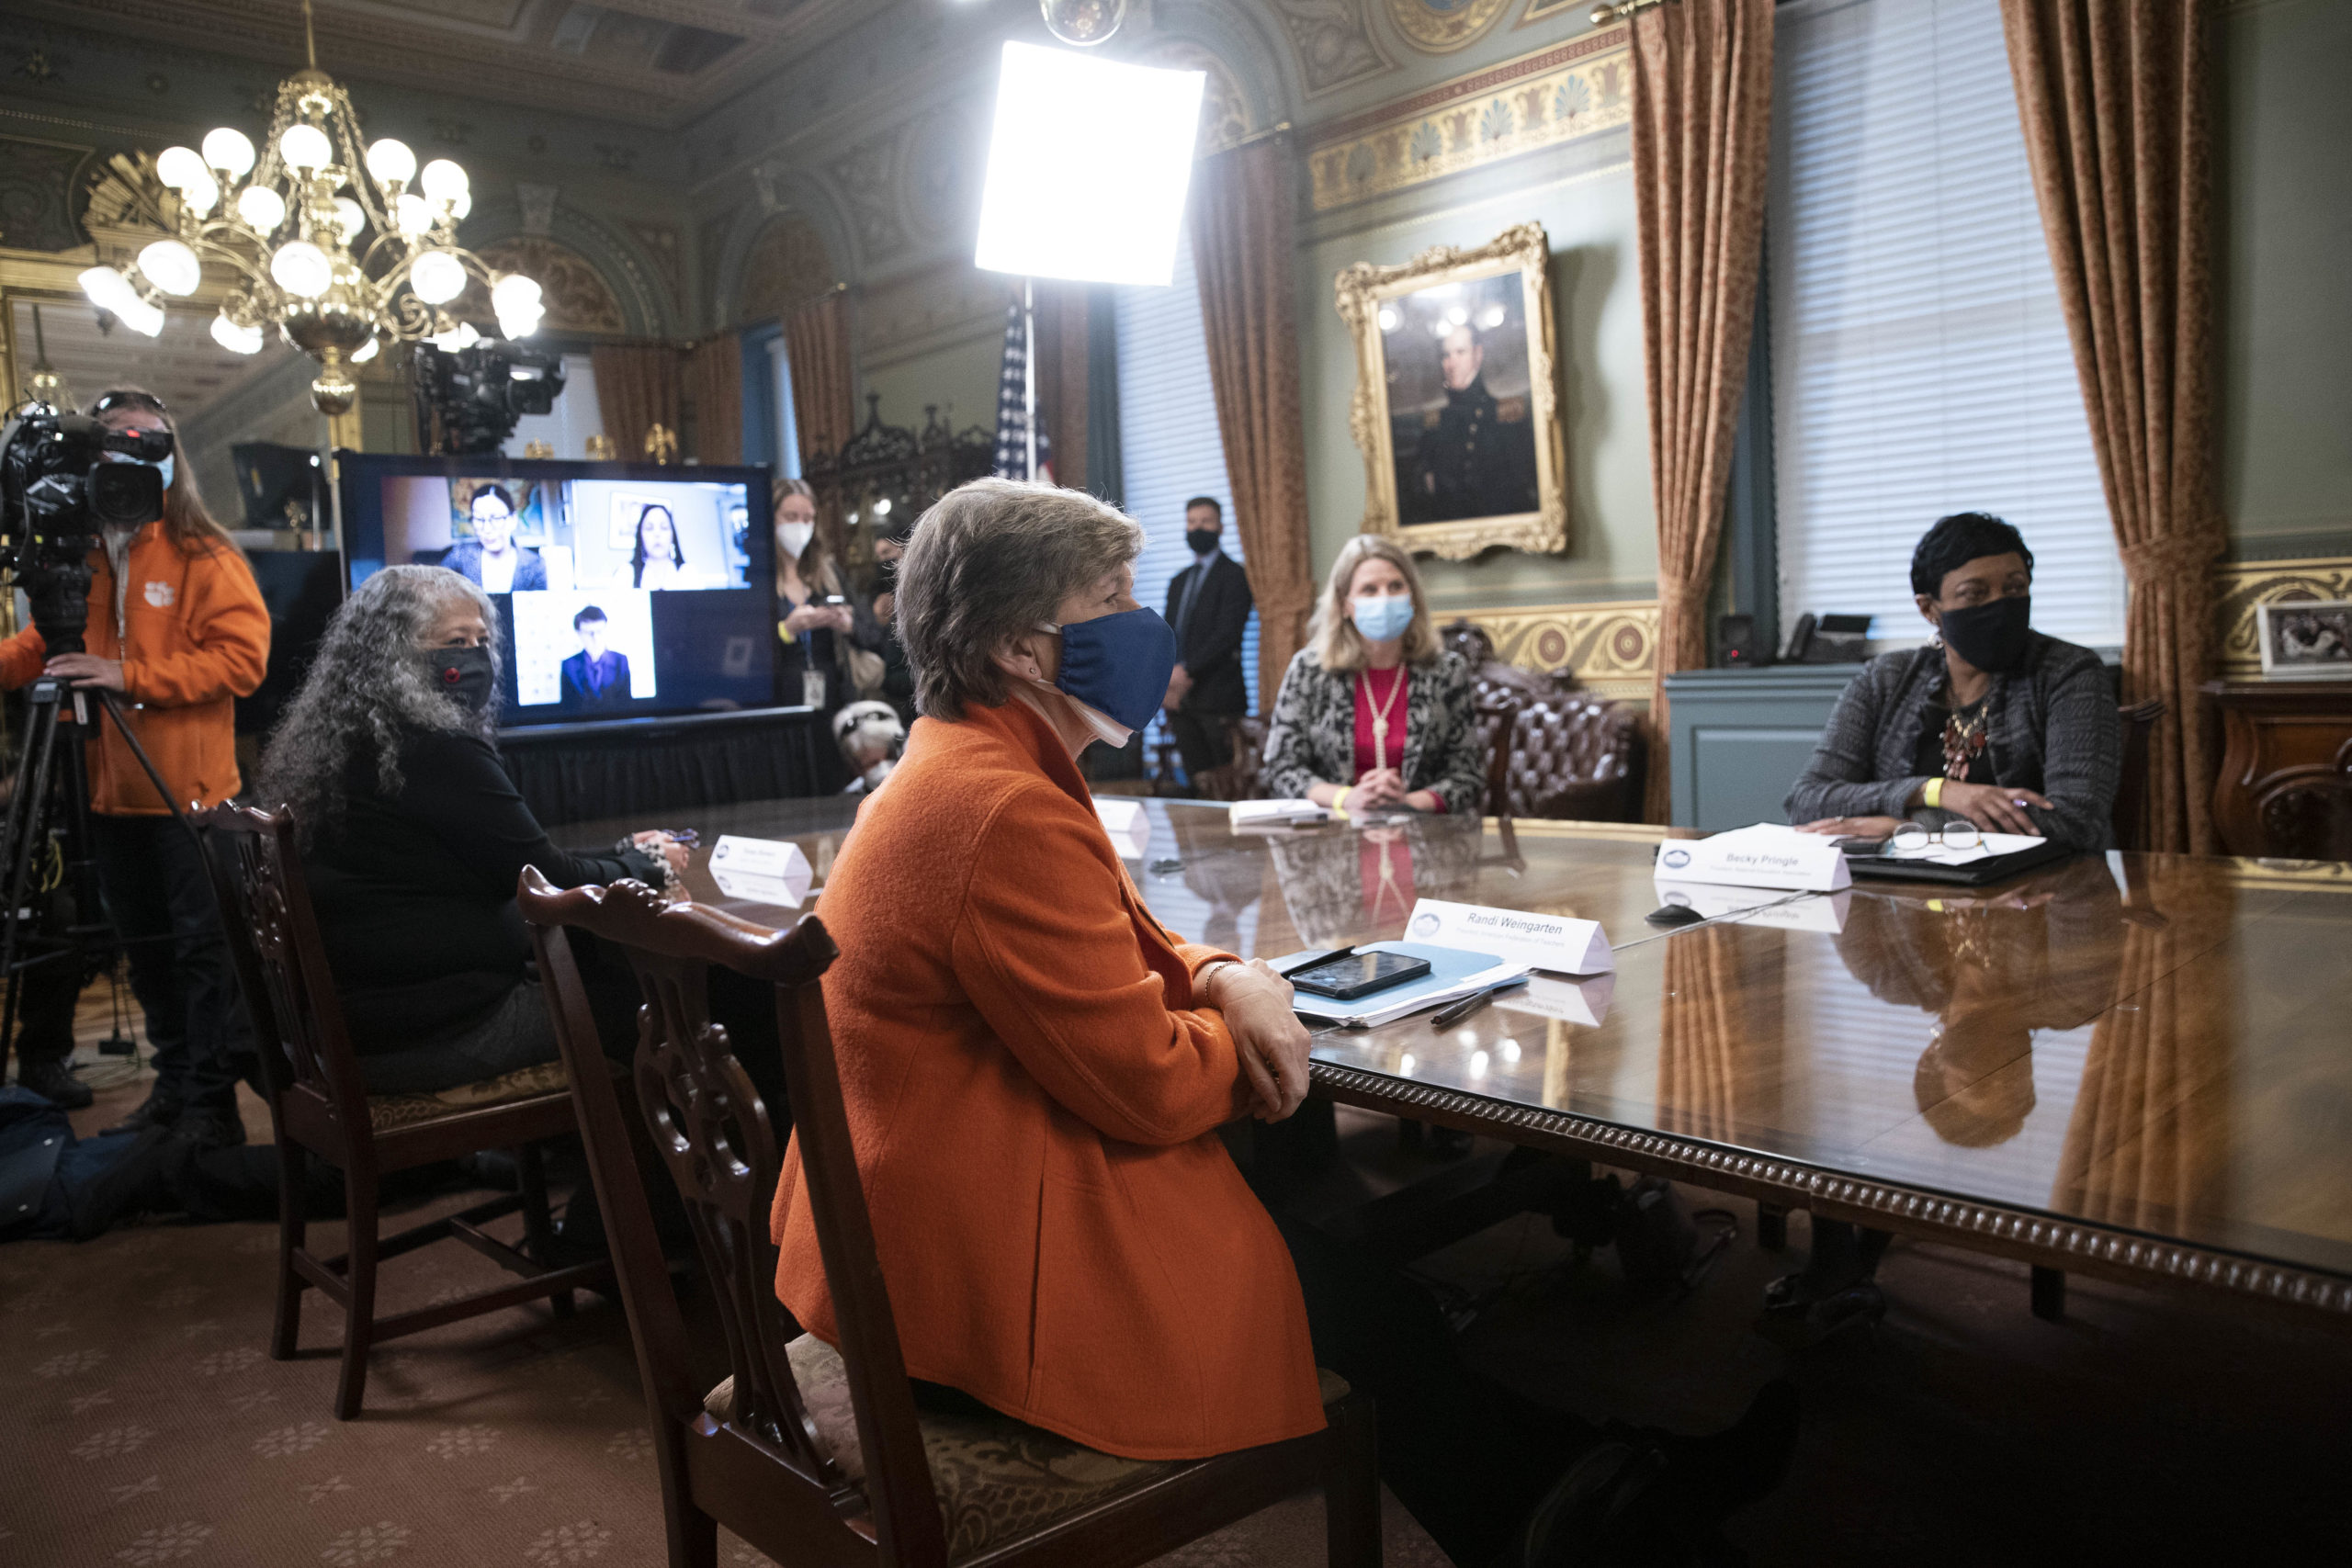 Randi Weingarten, president of the American Federation of Teachers, listens as Vice President Kamala Harris leads a meeting with female labor leaders on March 18 in Washington, D.C. (Sarah Silbiger/Getty Images)